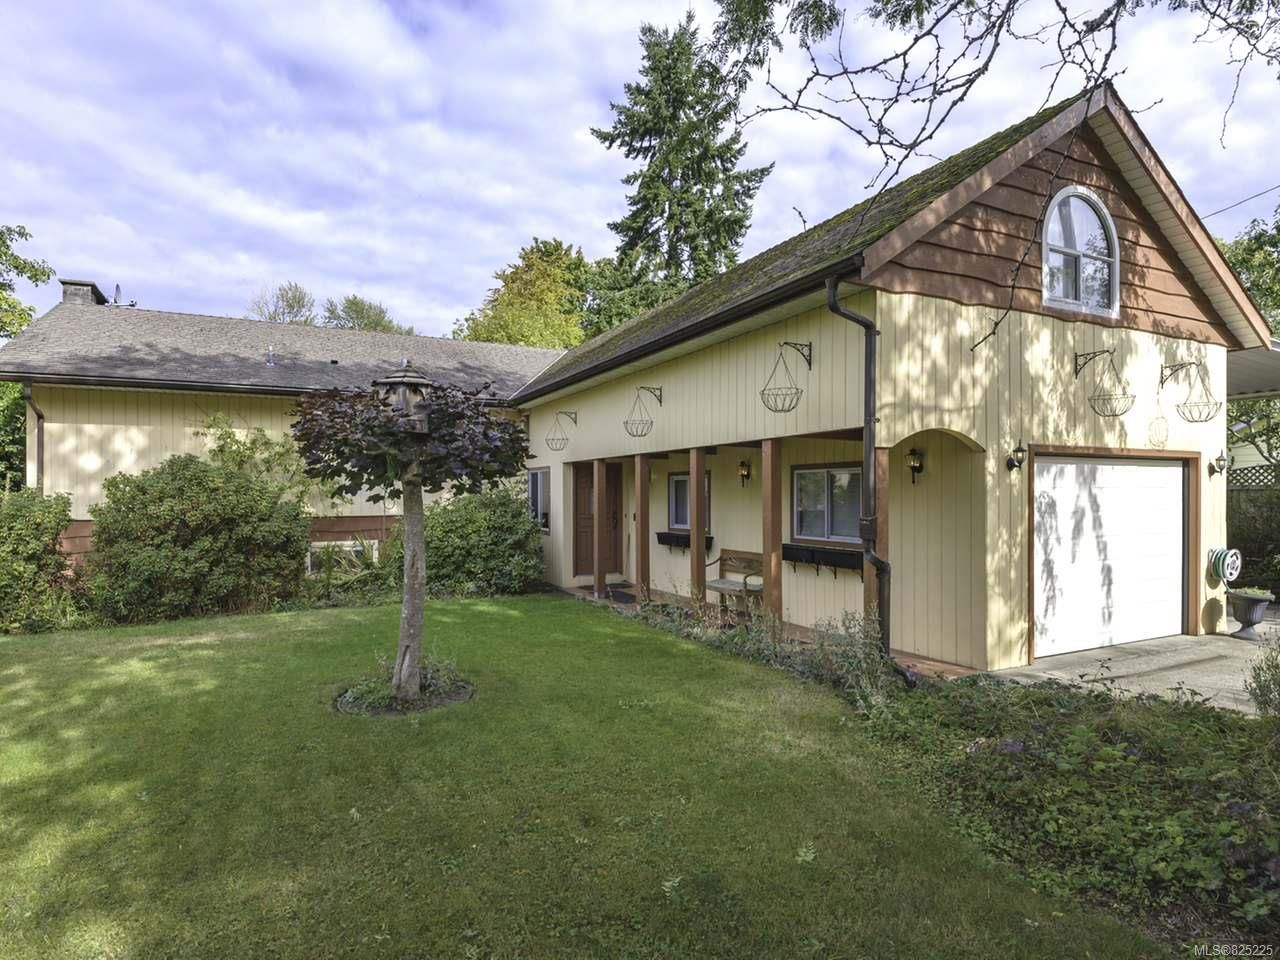 Main Photo: 1146 Beckensell Ave in COURTENAY: CV Courtenay City House for sale (Comox Valley)  : MLS®# 825225